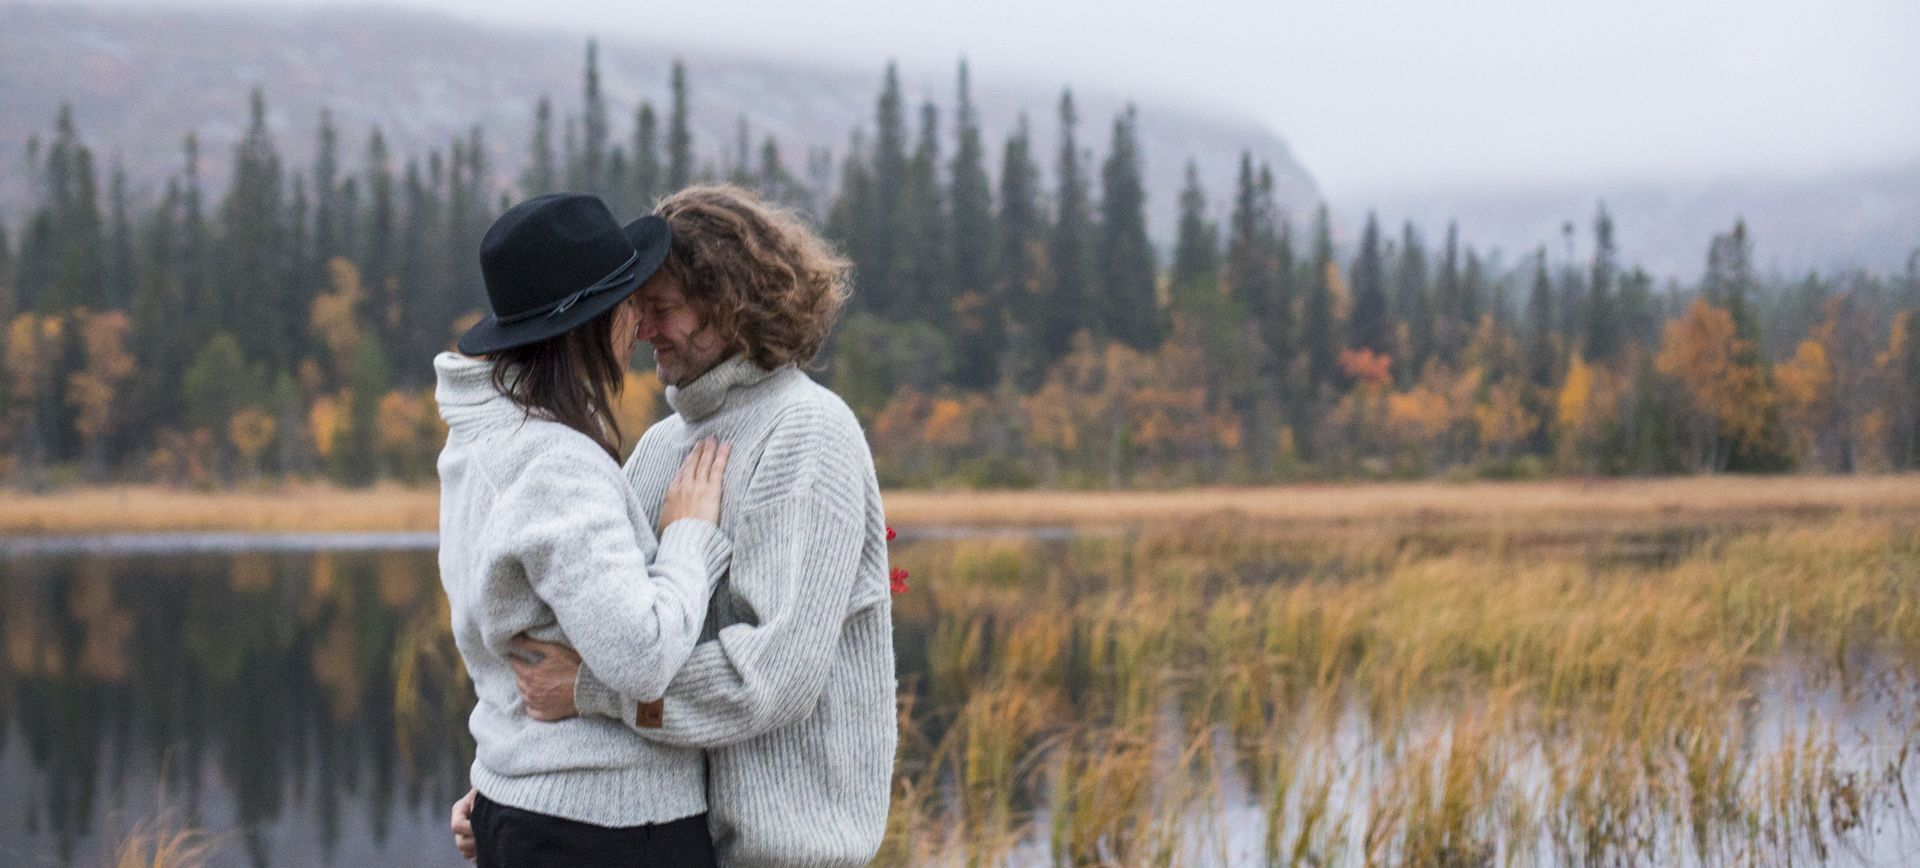 adventure wedding package sweden - get married at a waterfall